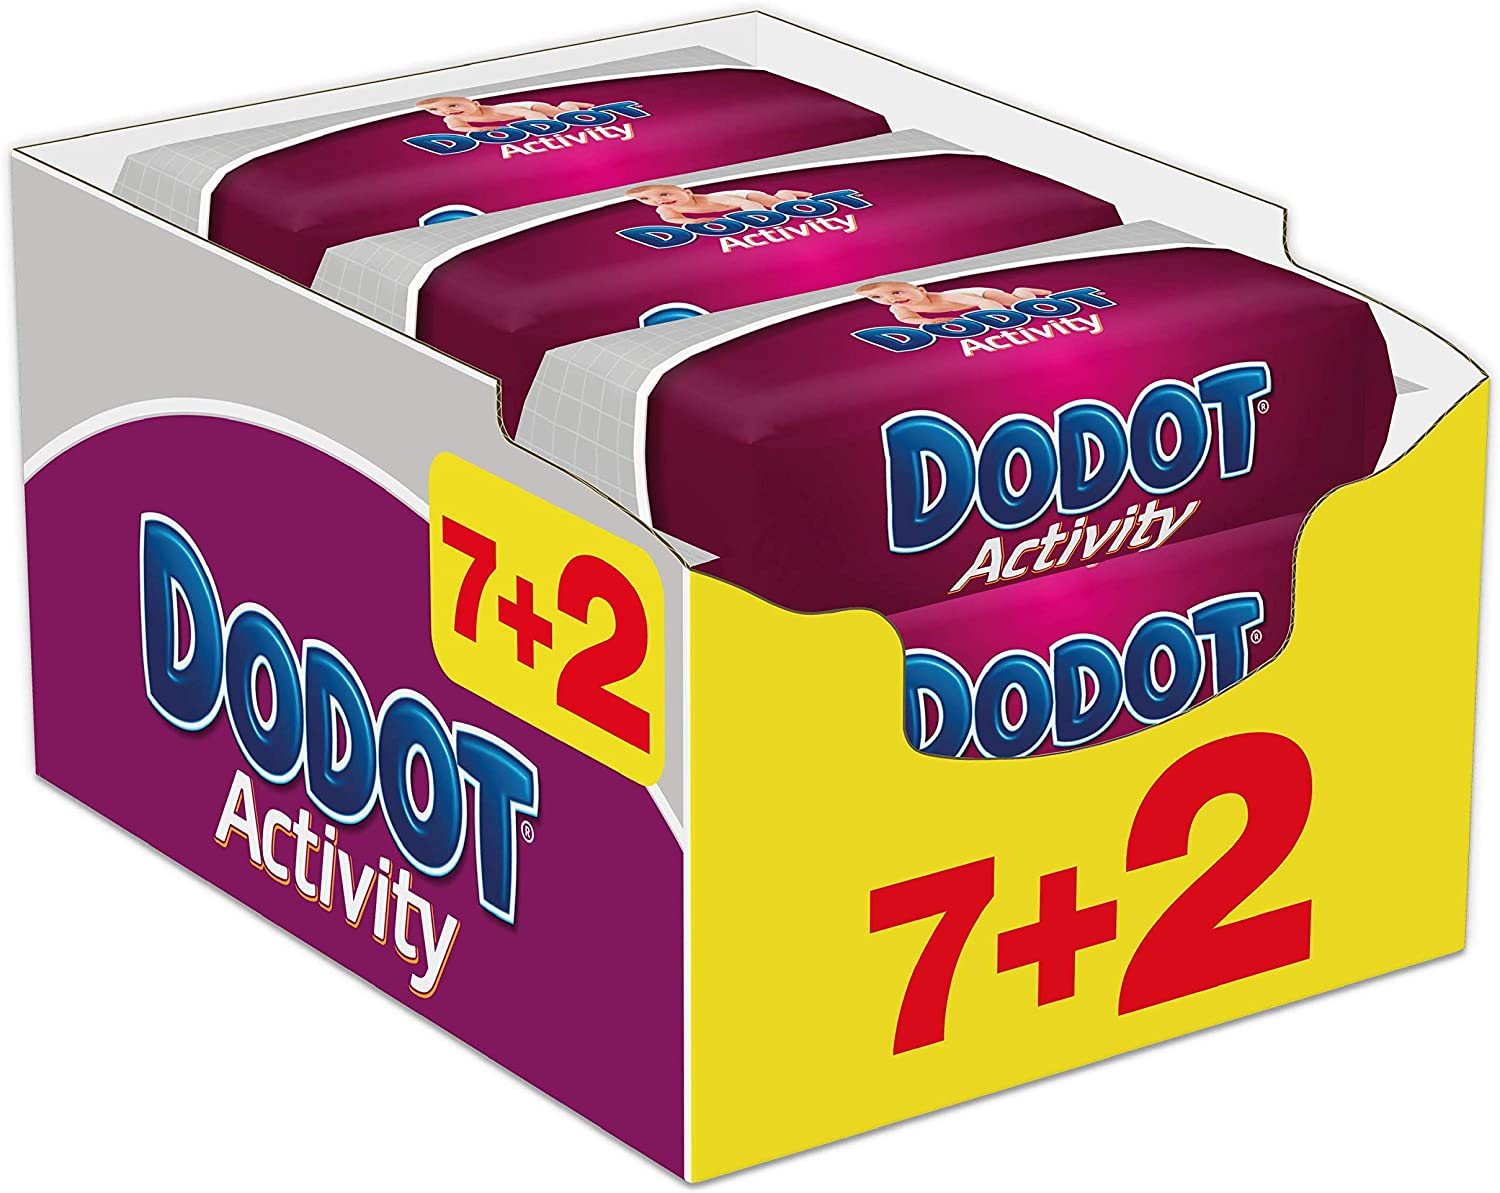 Dodot Activity - Toallitas, 9 Paquetes de 54 unidades: Amazon.es ...